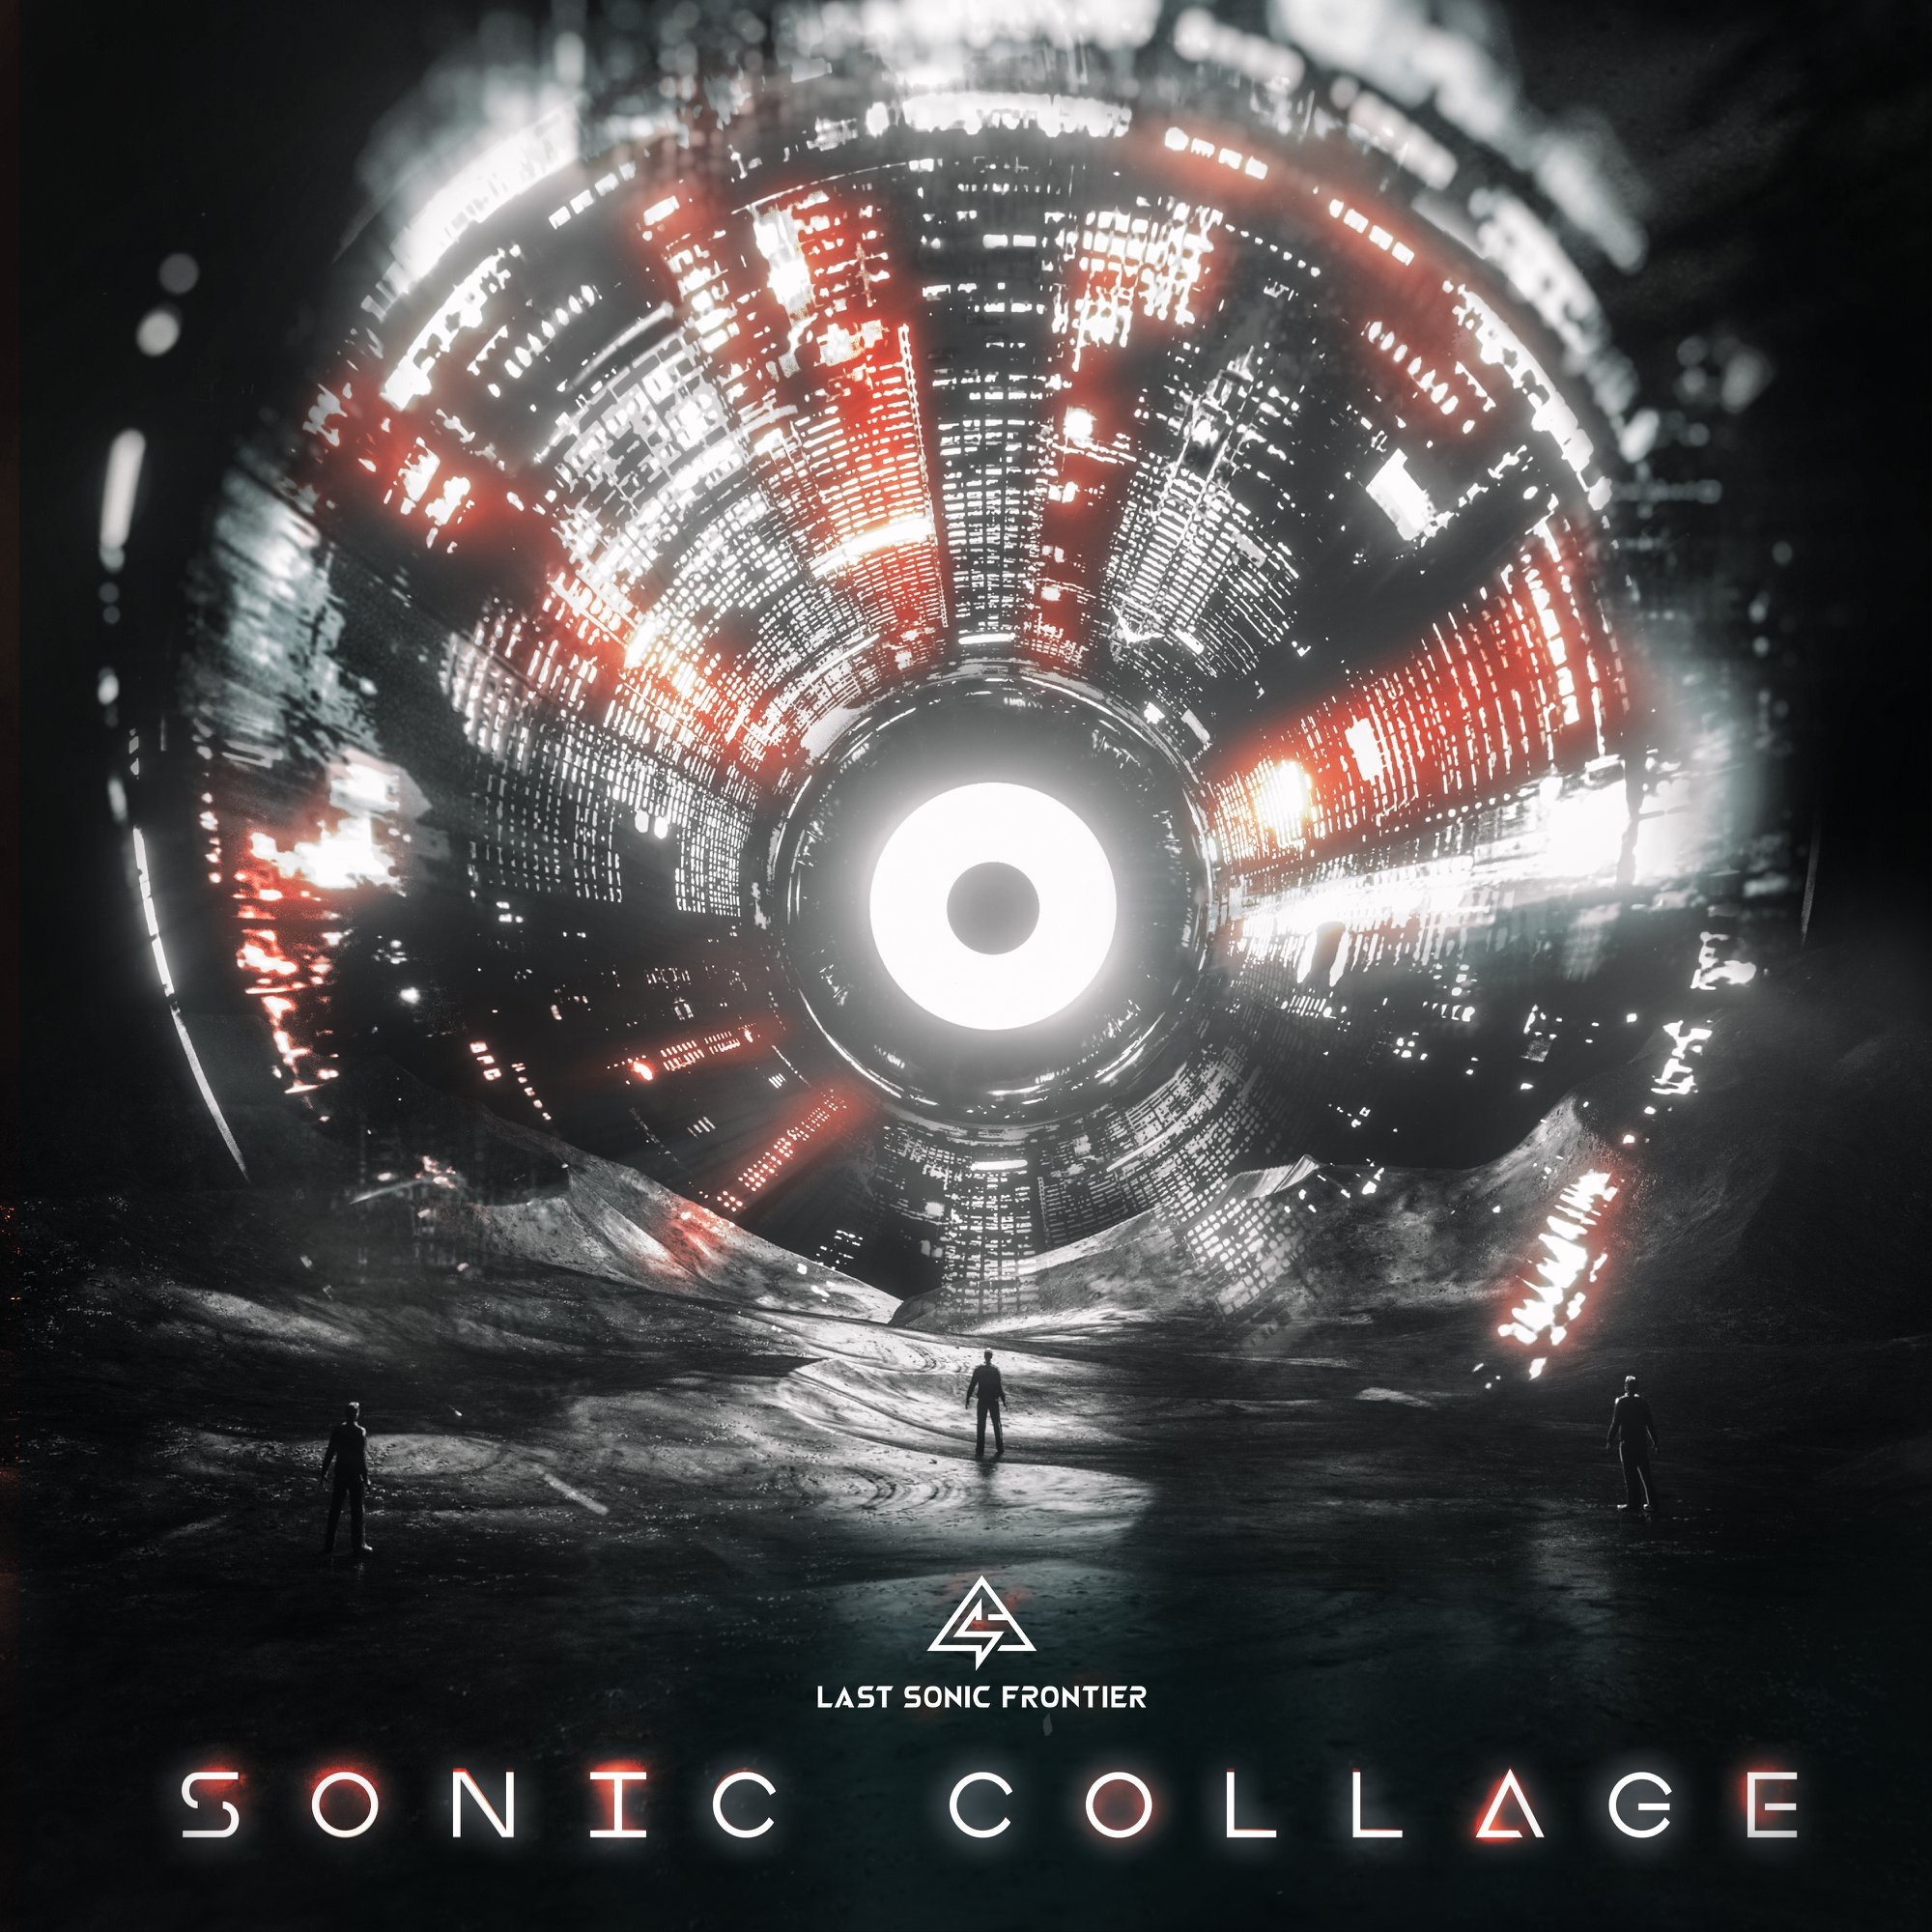 Sonic Collage